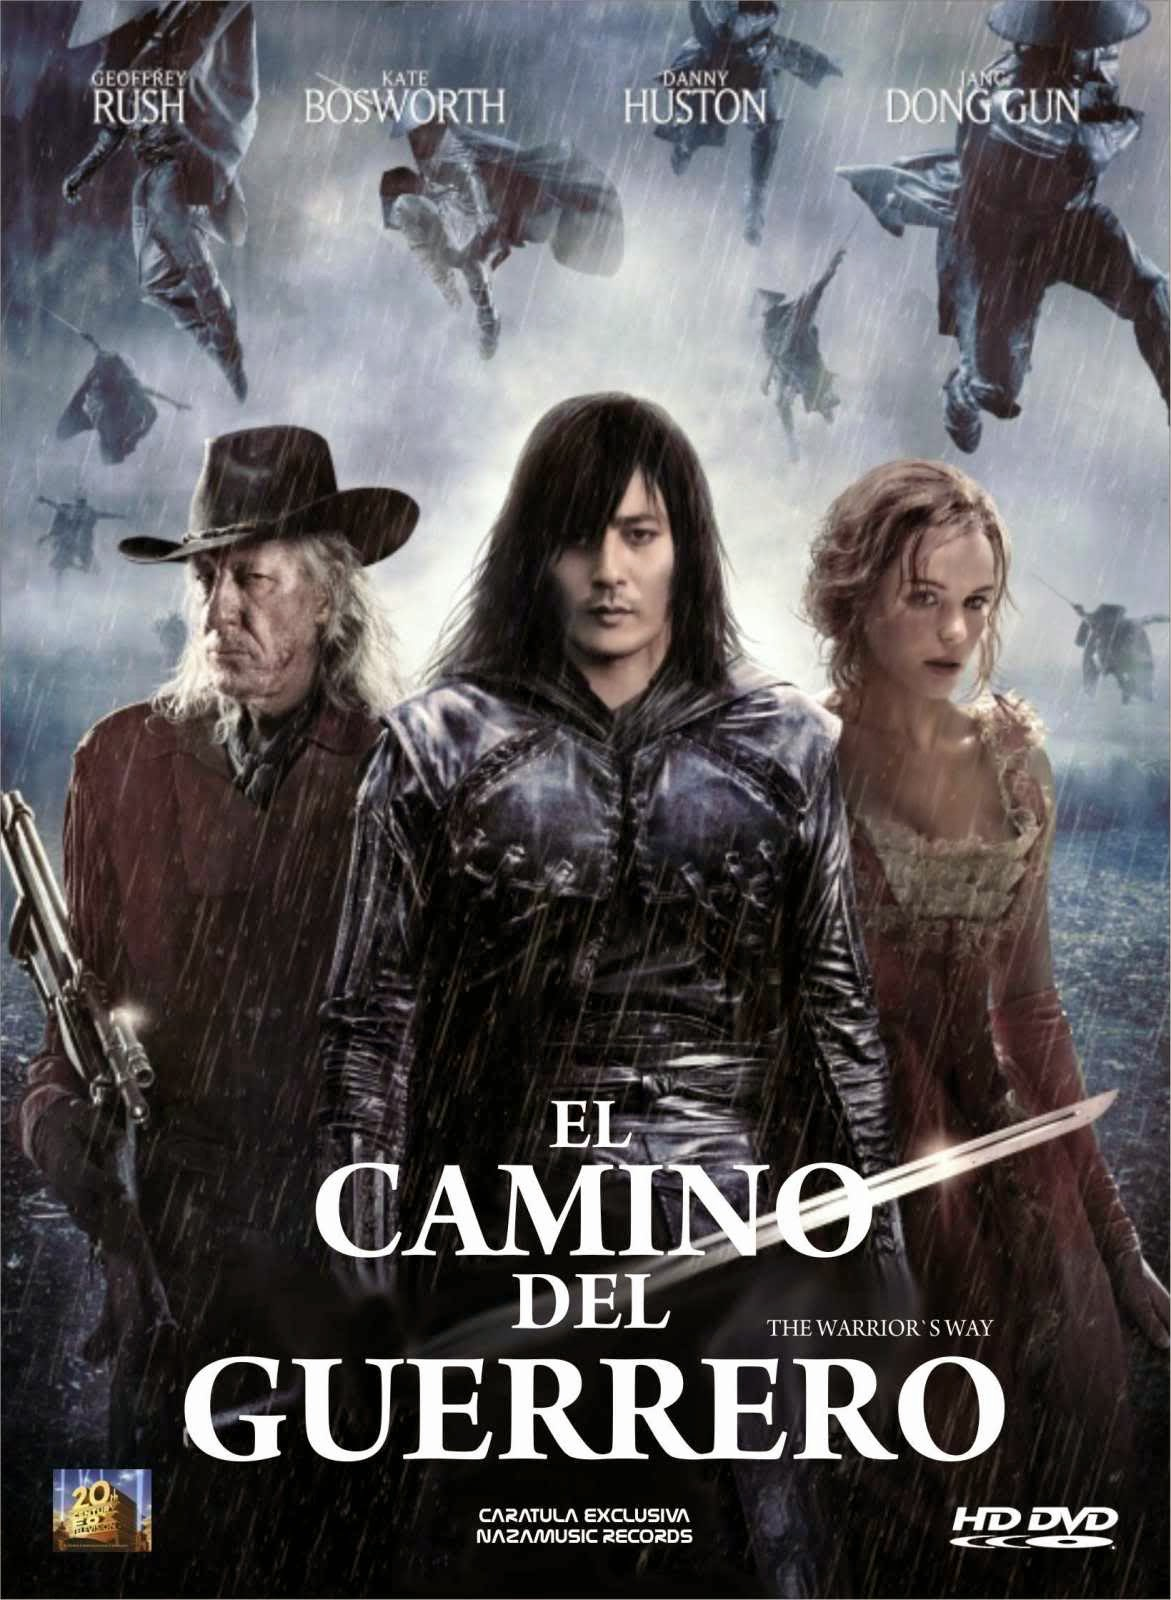 El camino del guerrero (The Warriors Way) (2010) [Latino]